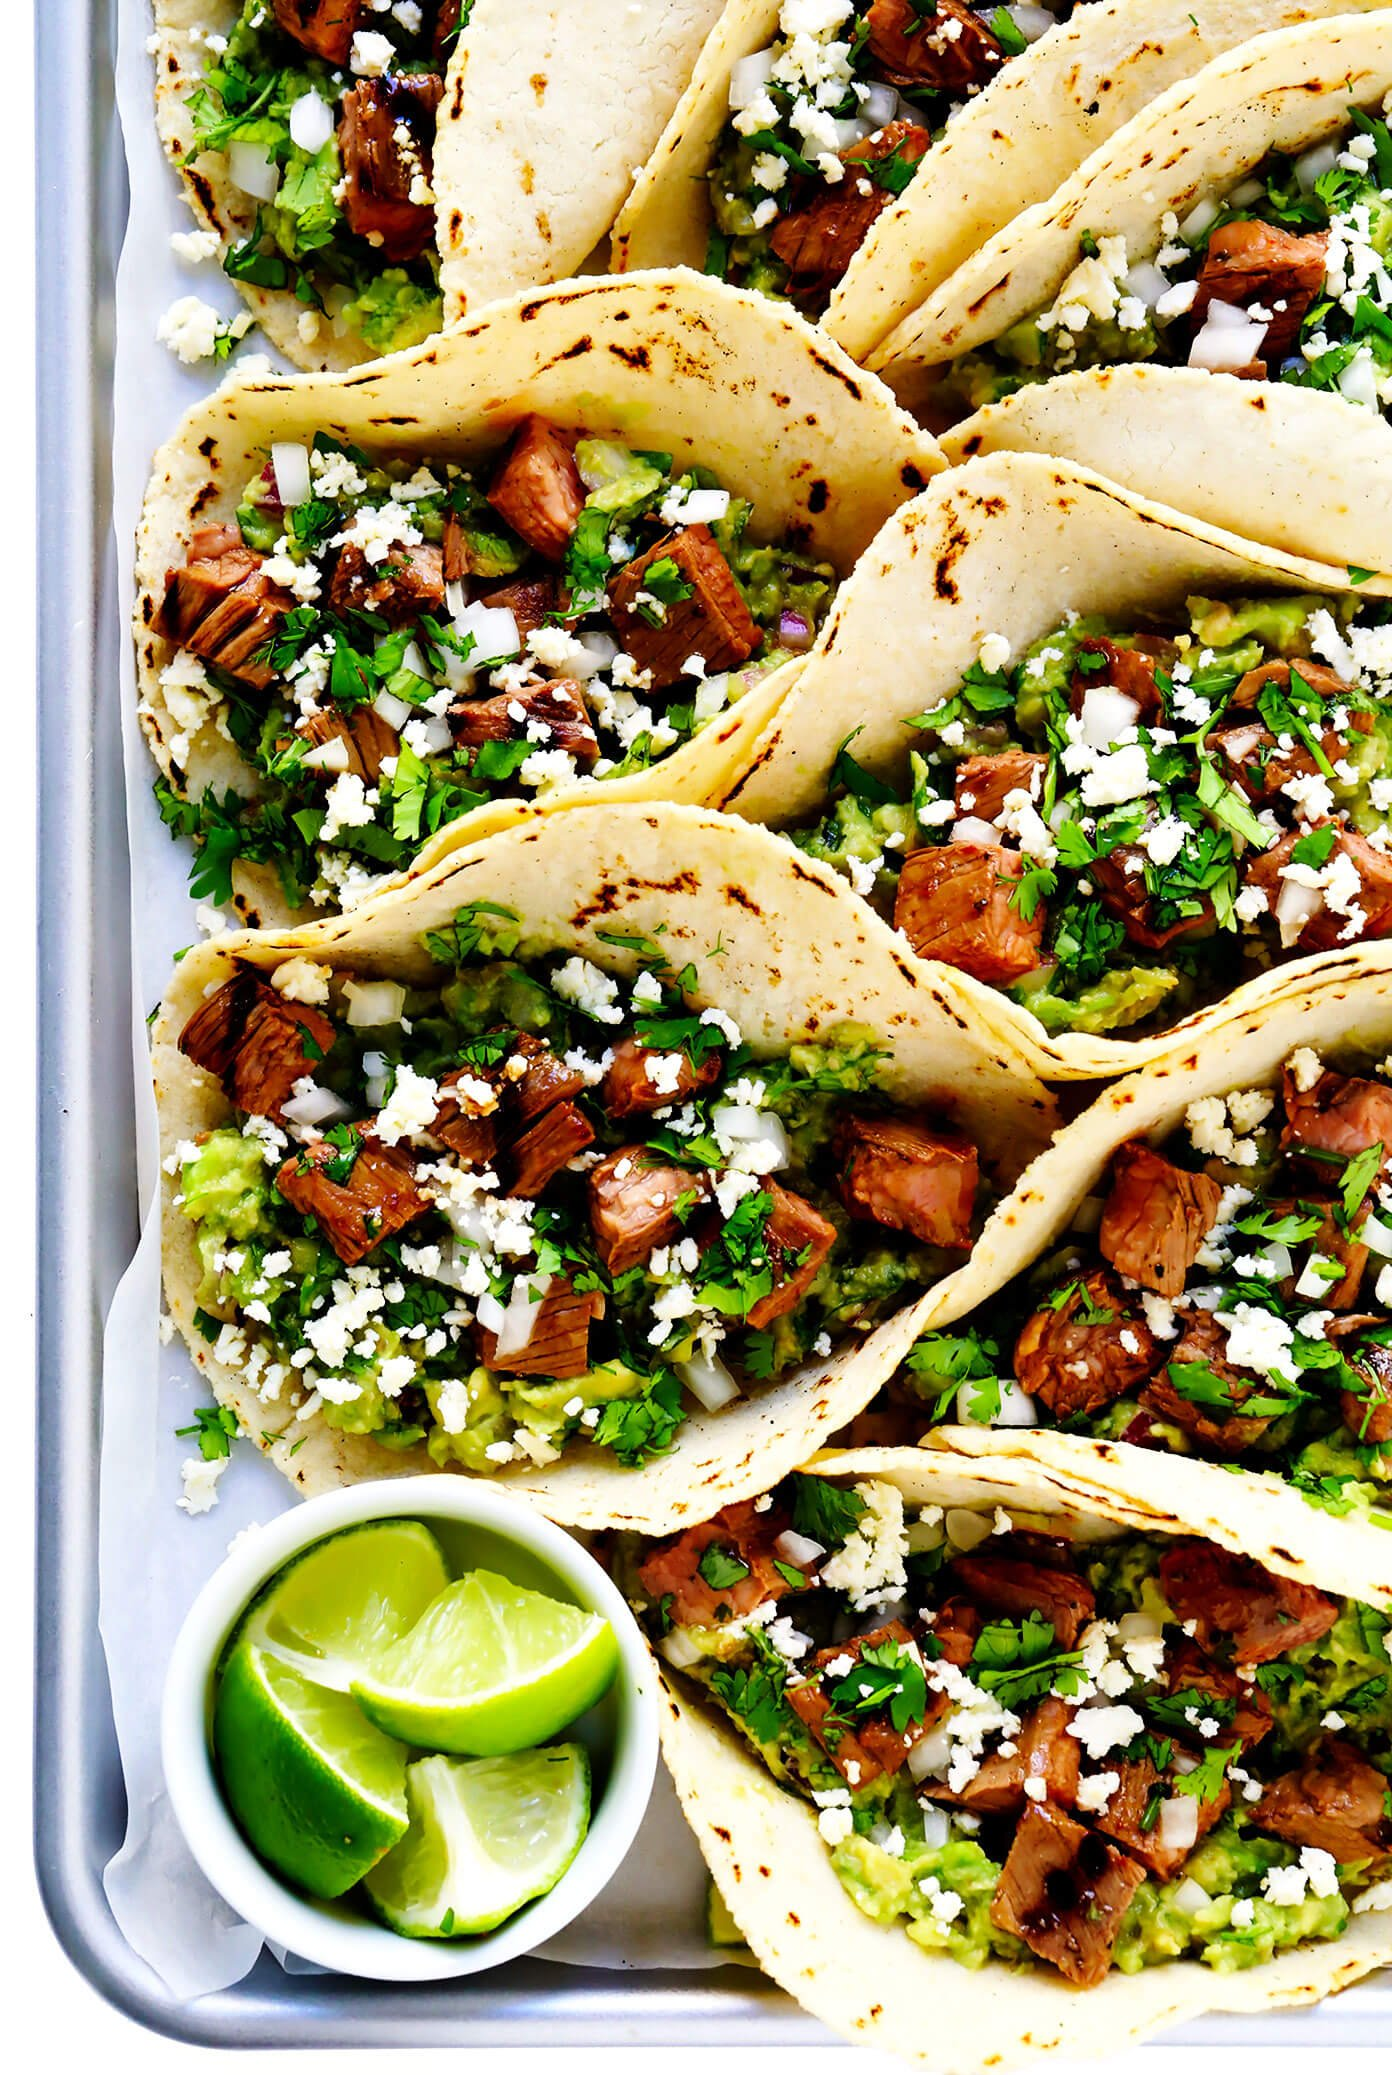 Tray of Carne Asada Tacos with Lime, Guacamole and Queso Fresco